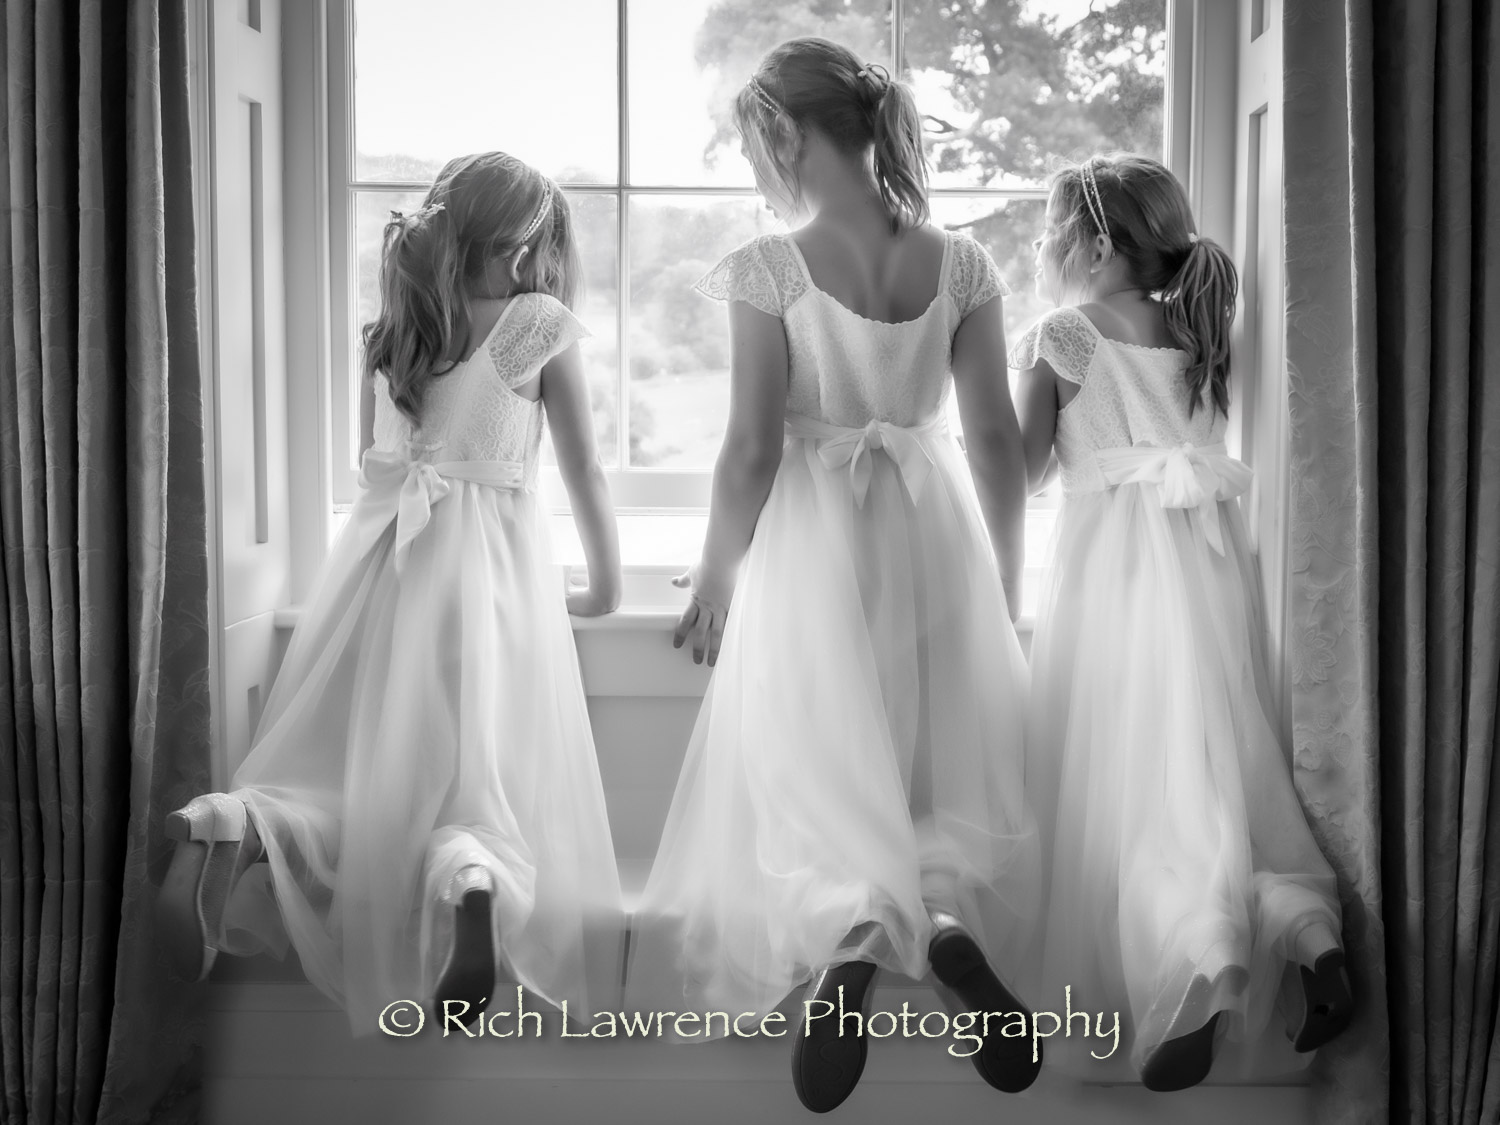 Three bridesmaids looking out of a window.